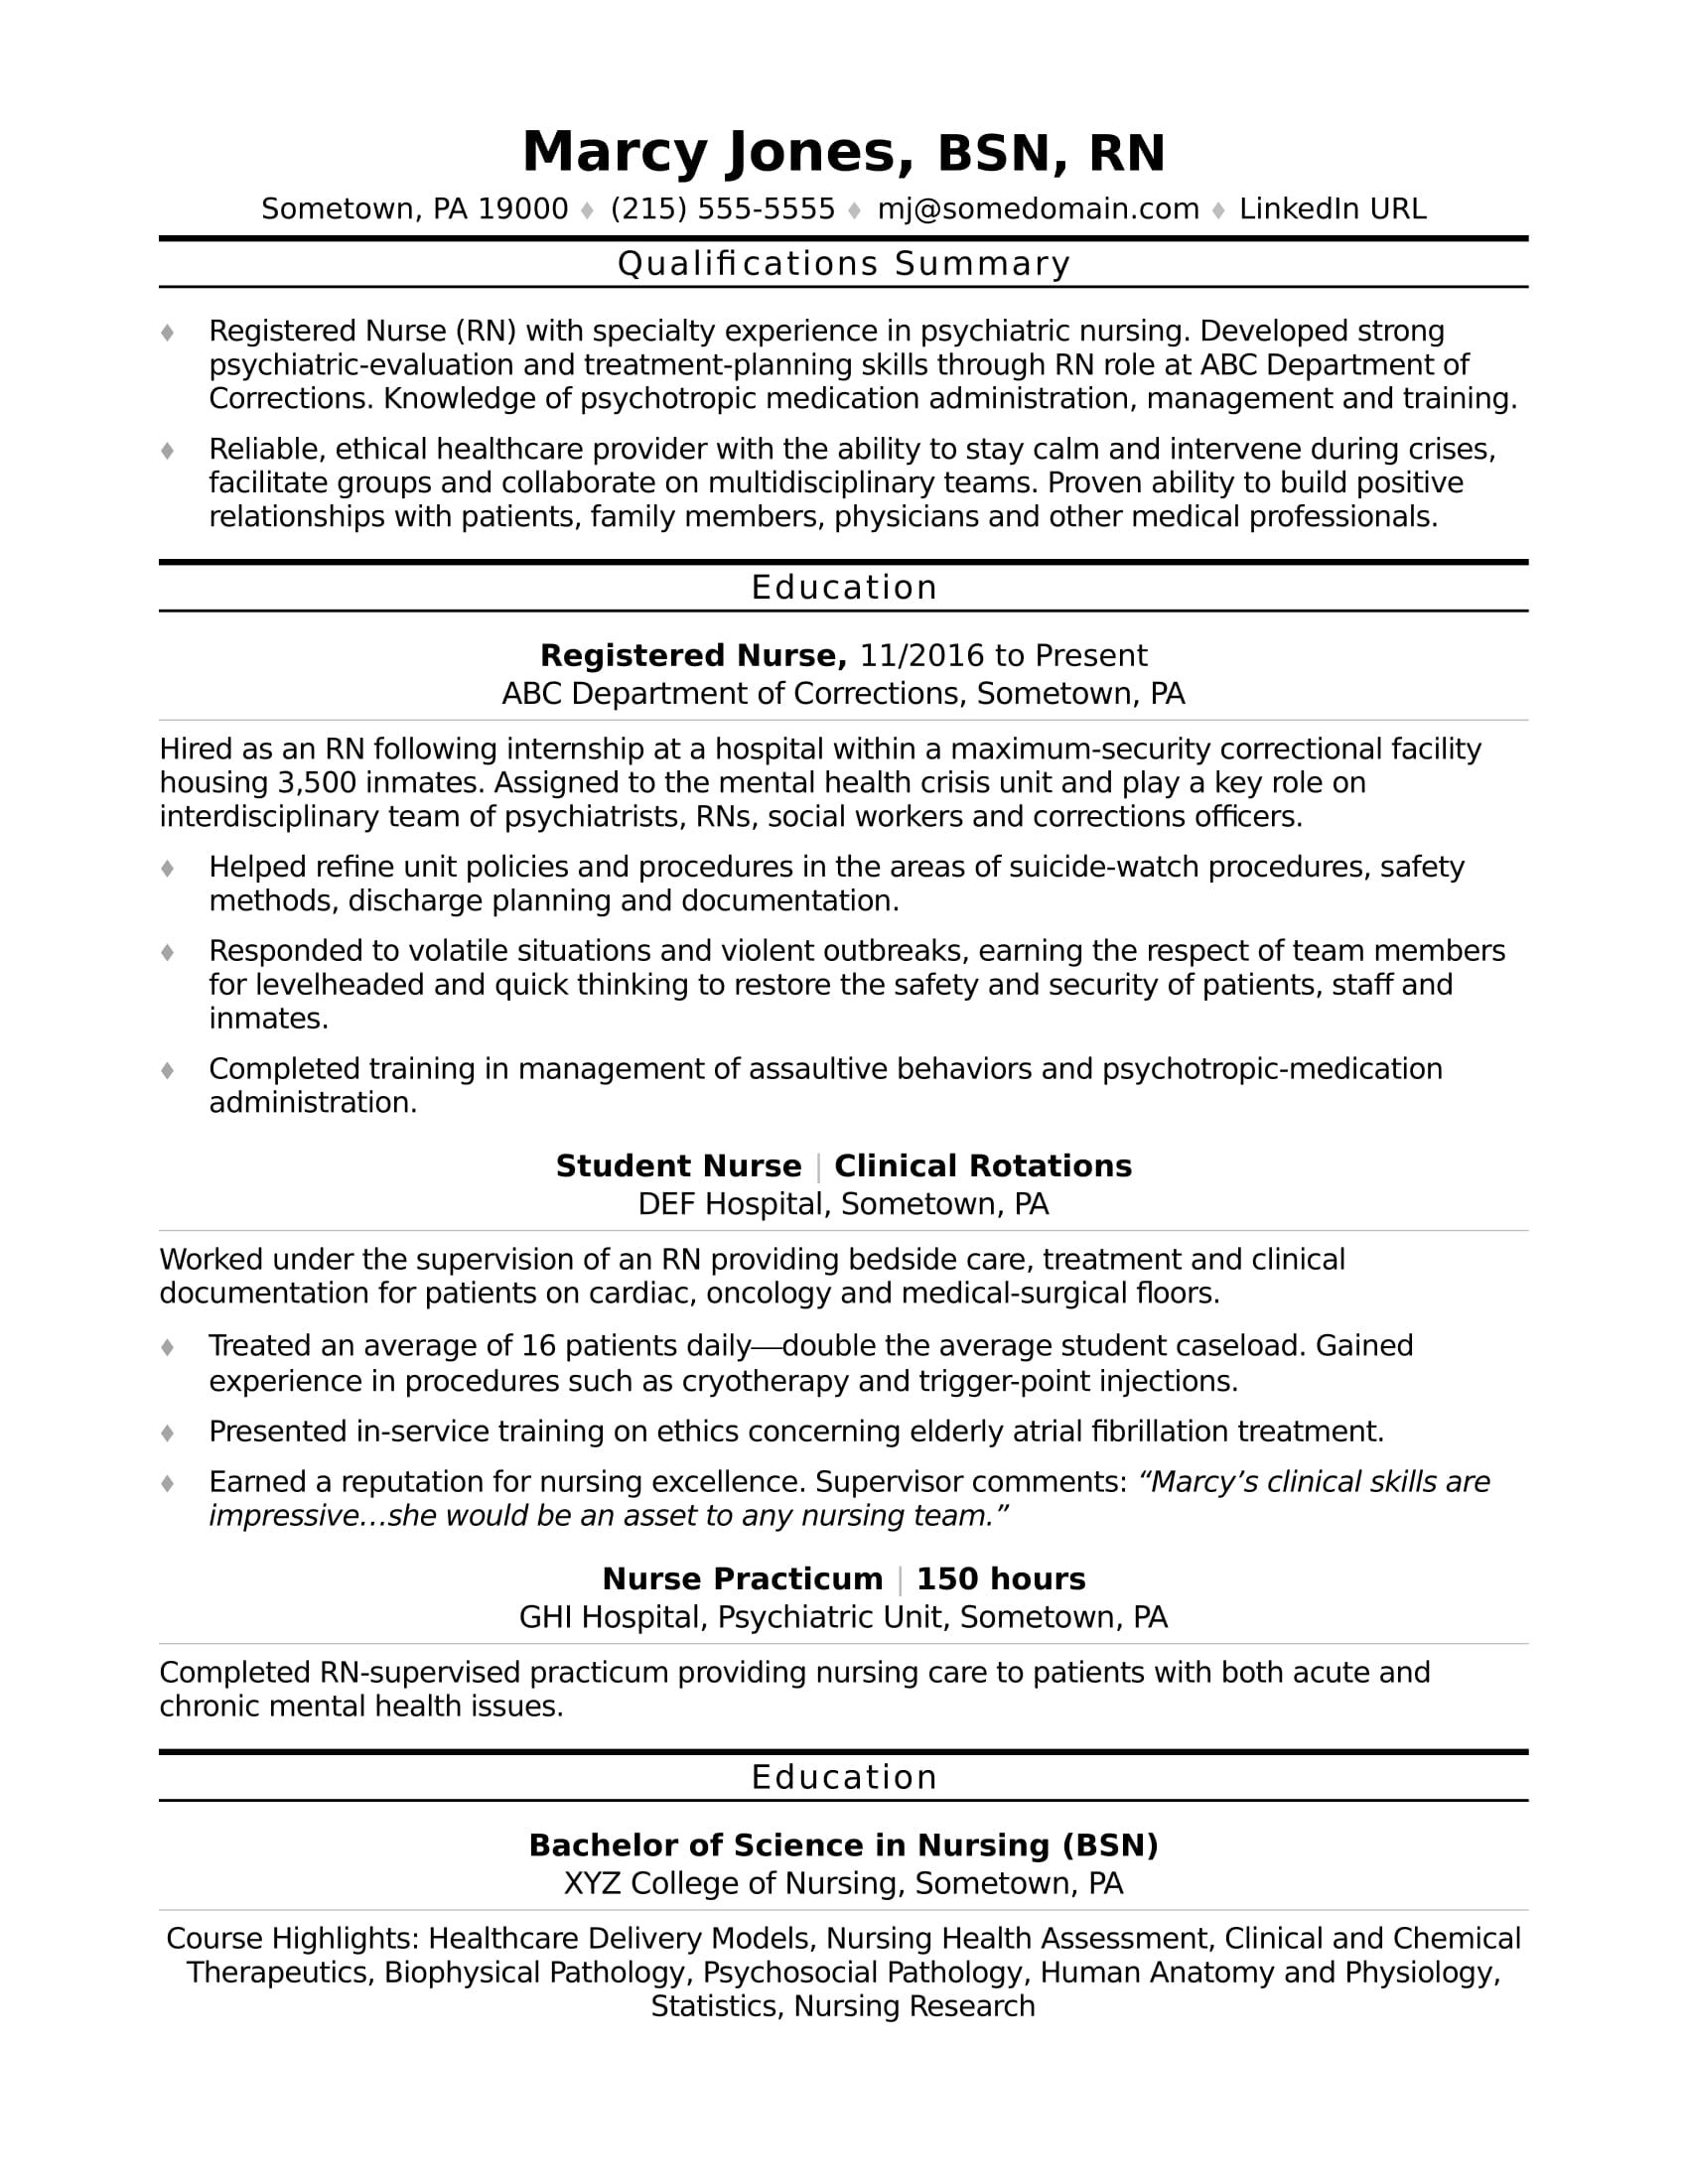 Learn How To Build A Powerful Entry Level Nurse Resume